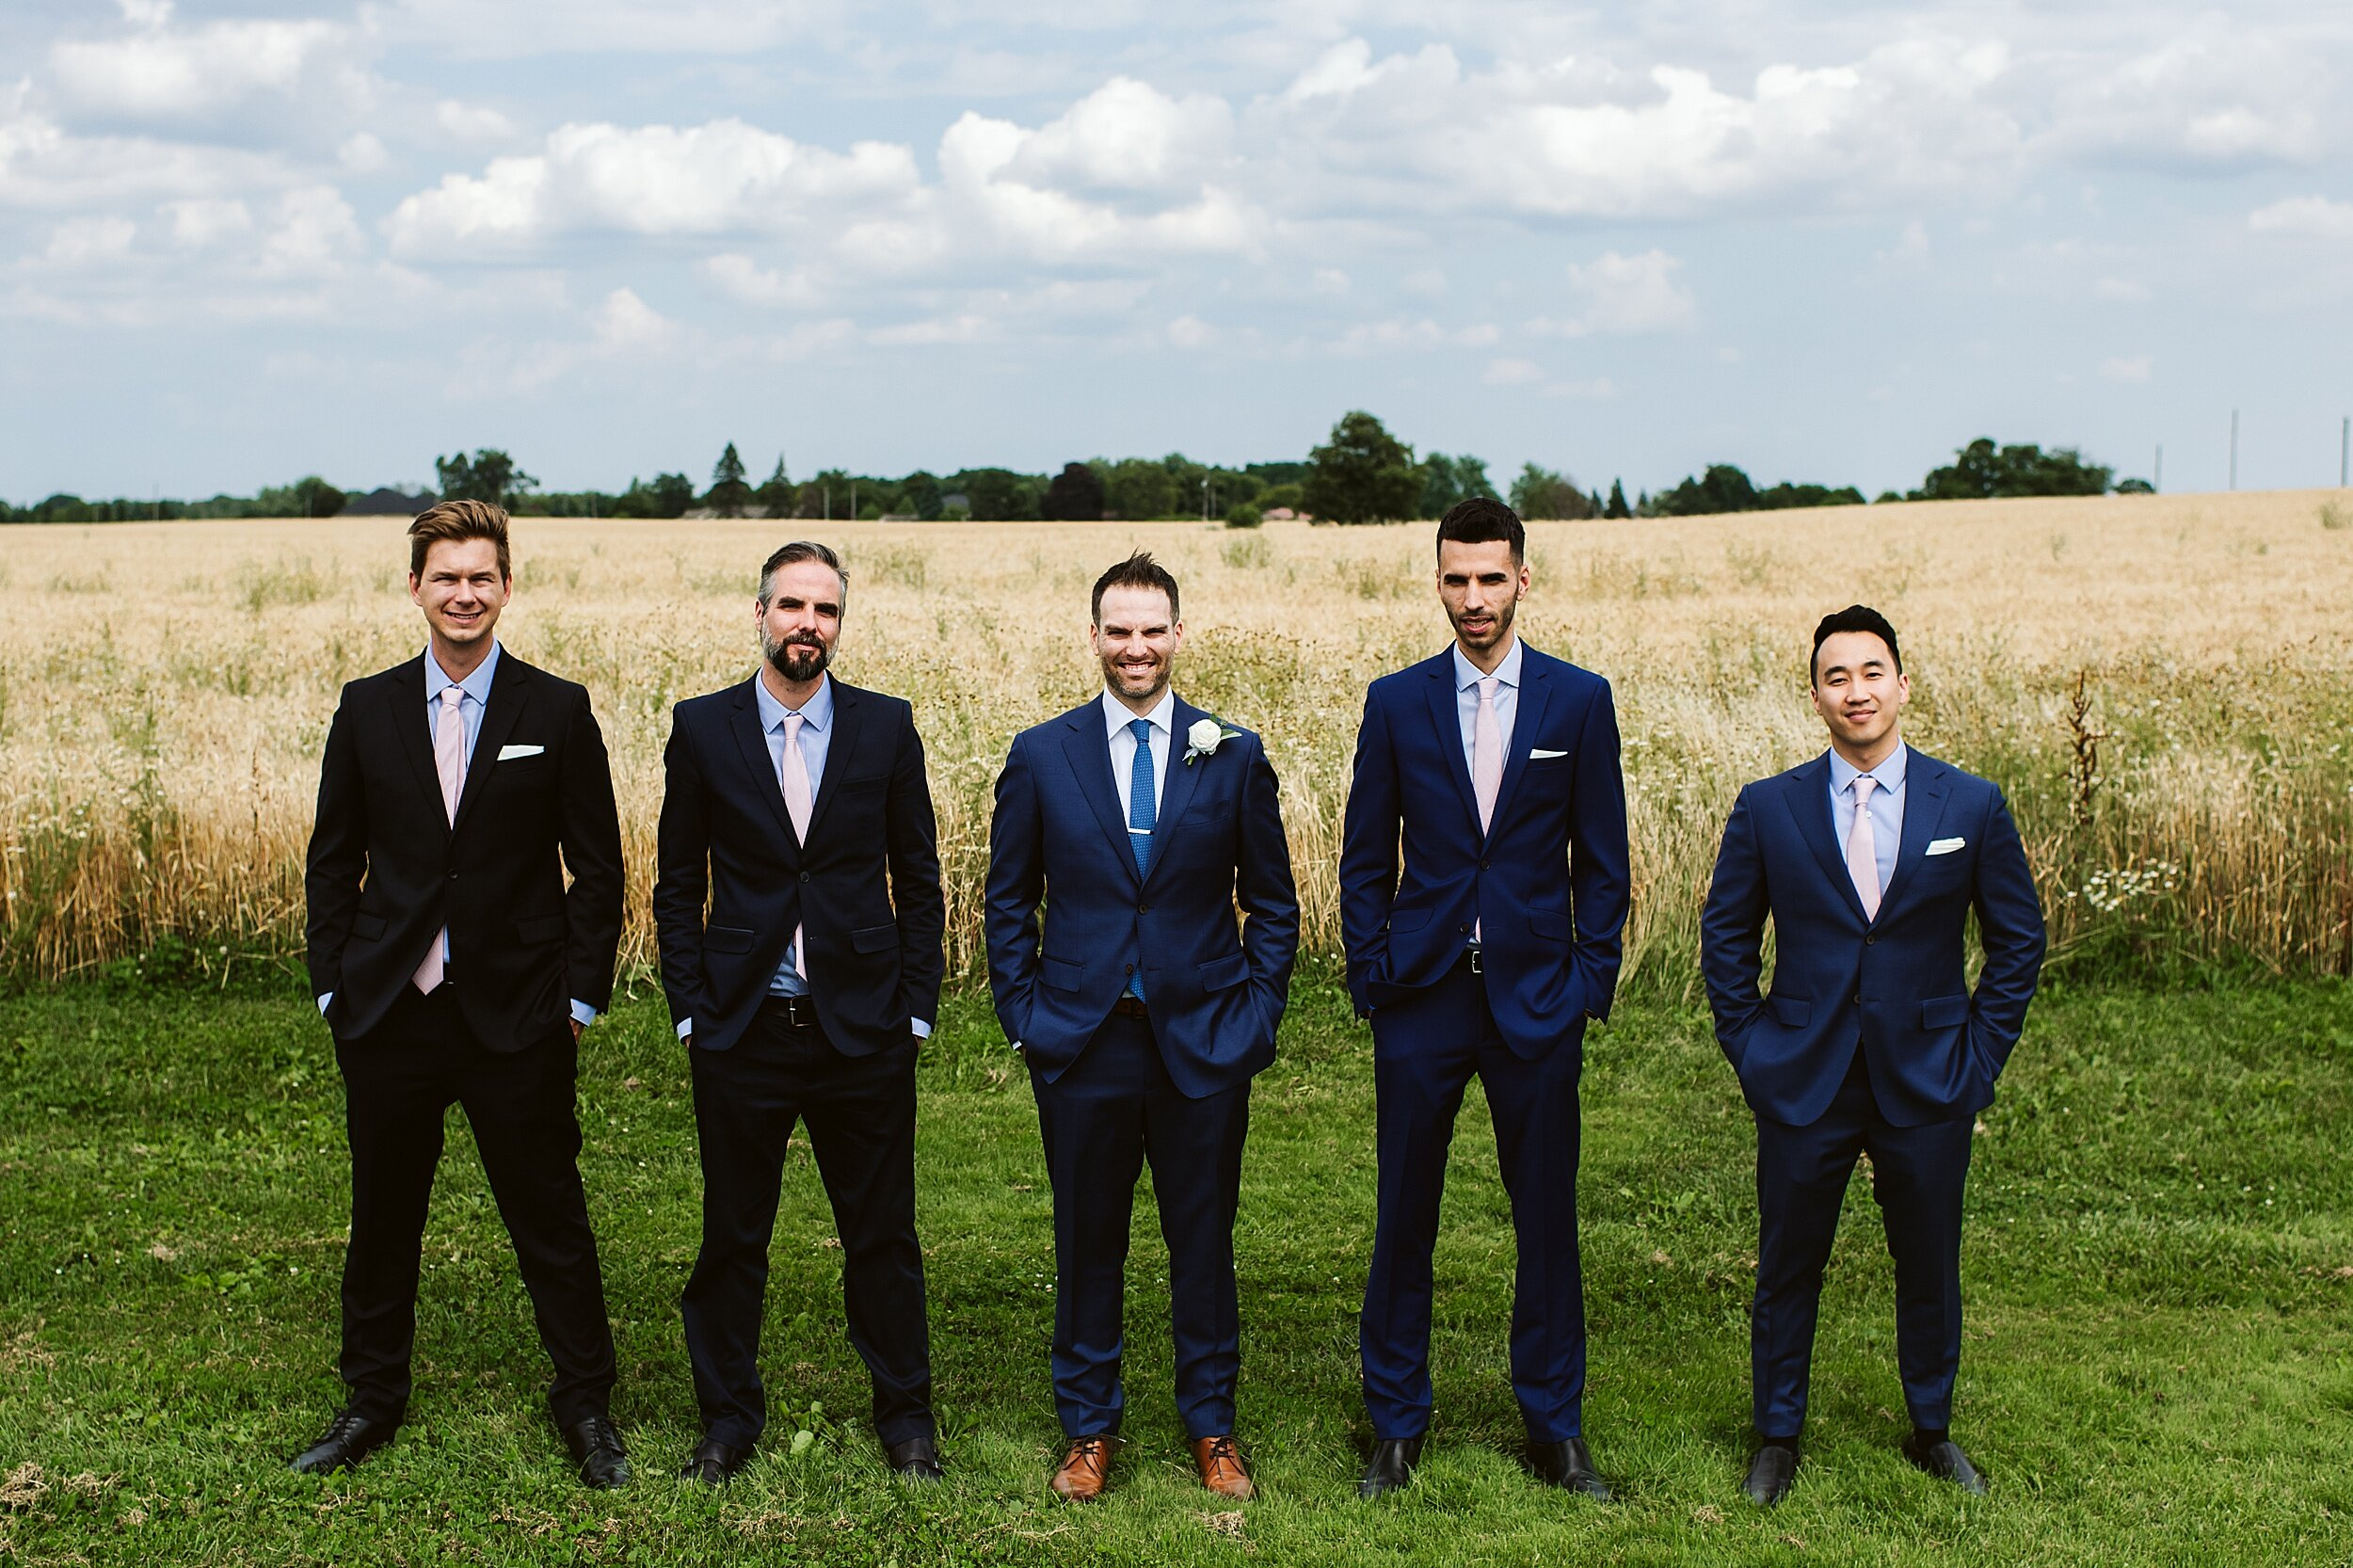 Glen_Drummon_Farm_Wedding_Toronto_Photographers_Fox_Photography_Dyments_0017.jpg